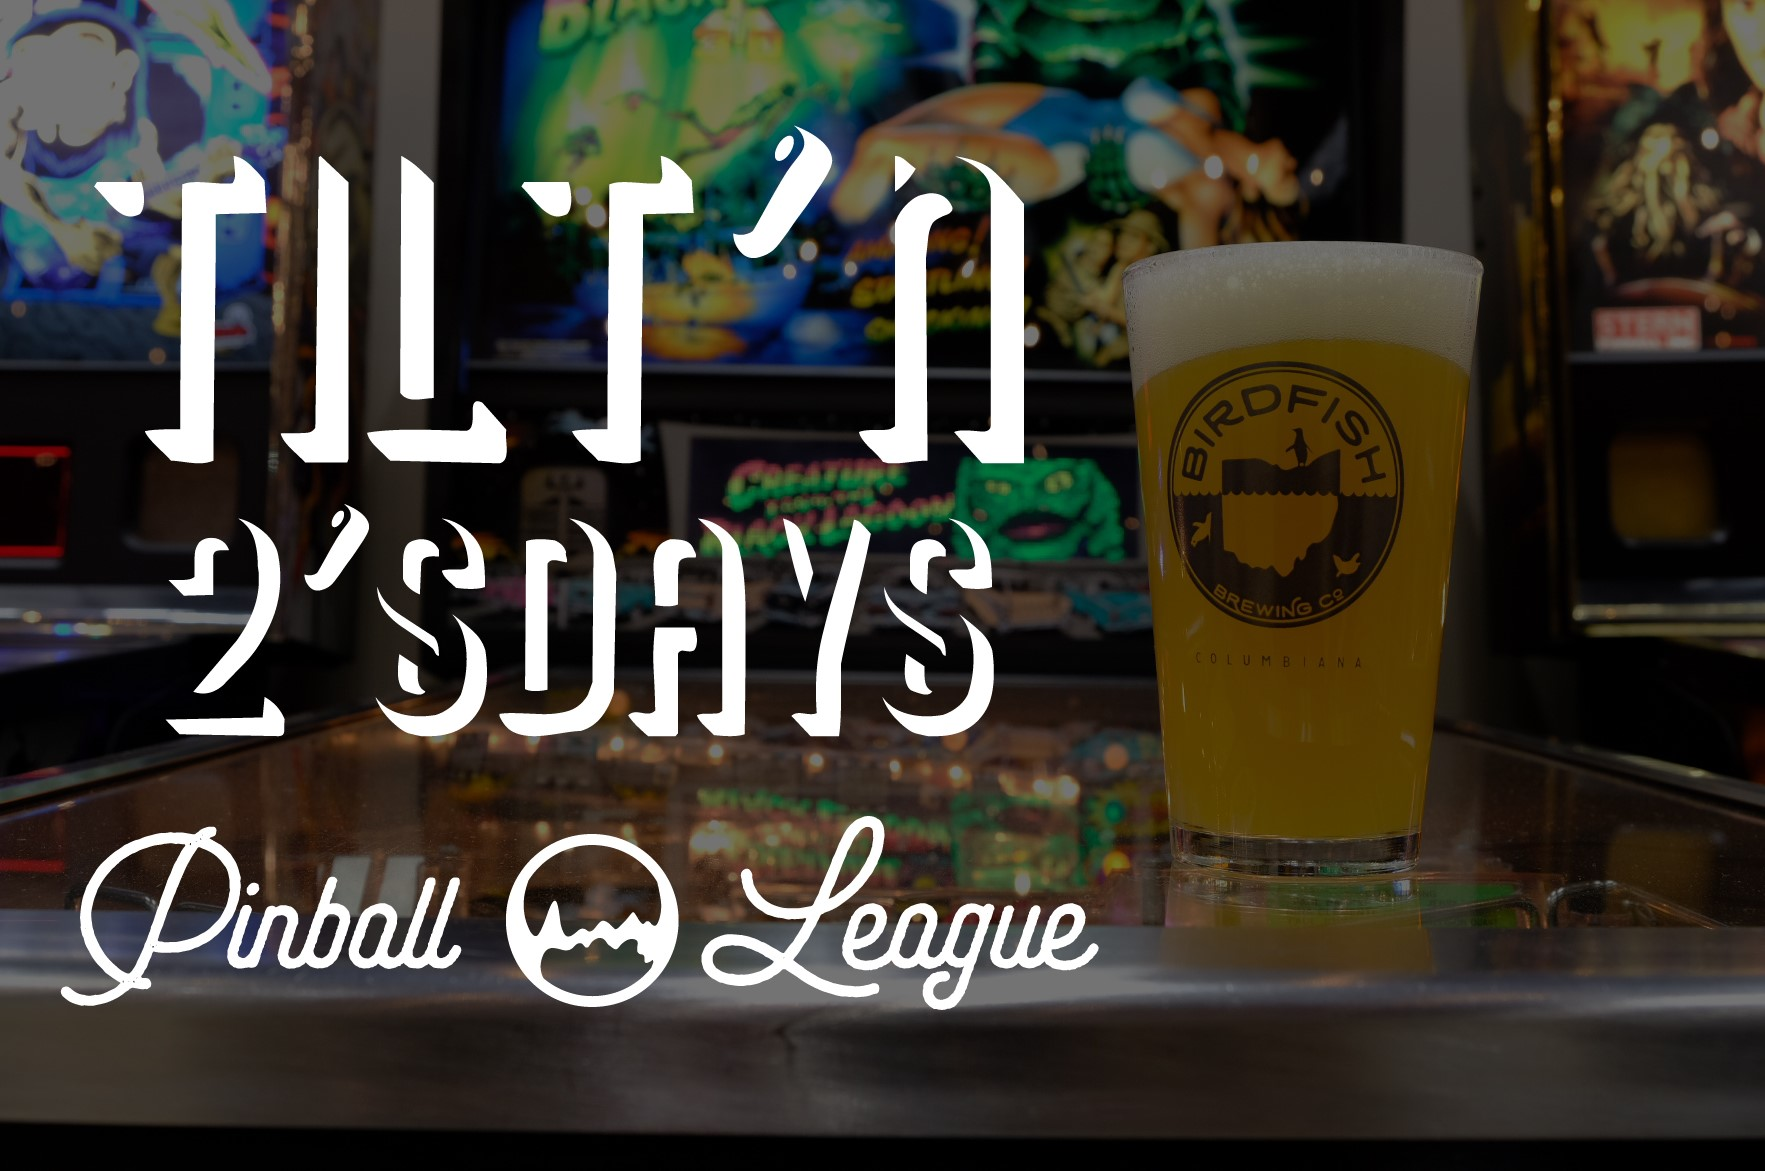 PINBALL LEAGUE EVERY TUESDAY AT 7 - Amateur Knockout Tournaments every week!  No experience required.  Coin drop only.  No commitment.  Show up when you can.  Drink beer and play pinball #quartersandporters #toohiptoflip #pintsnotpoints # fliplocalYO